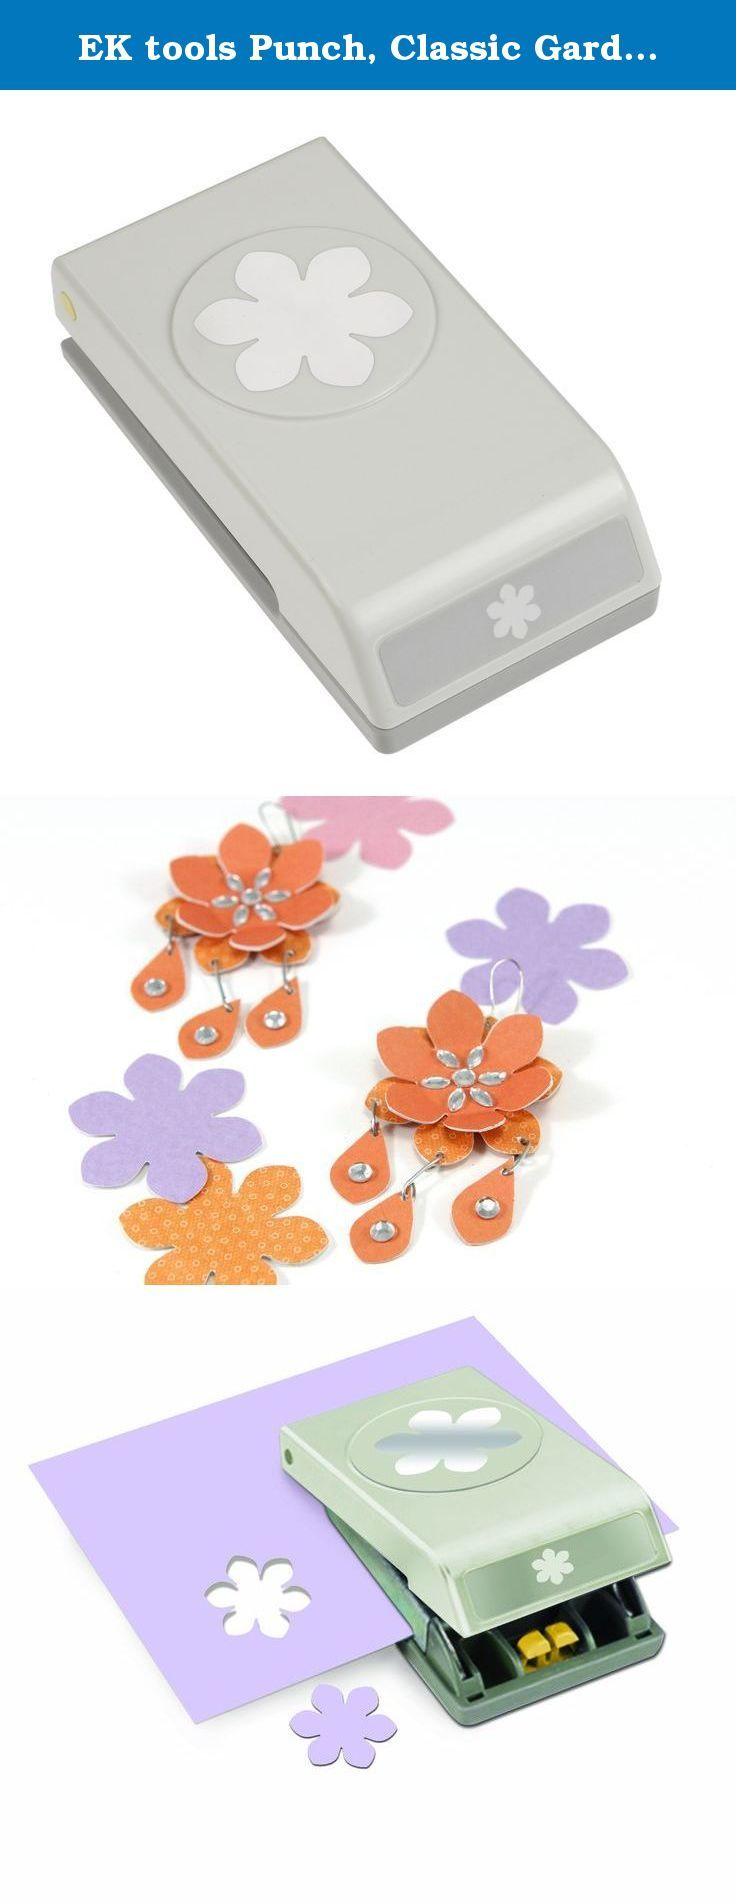 EK tools Punch, Classic Gardenia. Add a fun embellishment to your handmade cards, decorations or gift tags with the ek tools Classic Gardenia Punch. Punch locks shut for stackable storage. Punched shape approx. x.